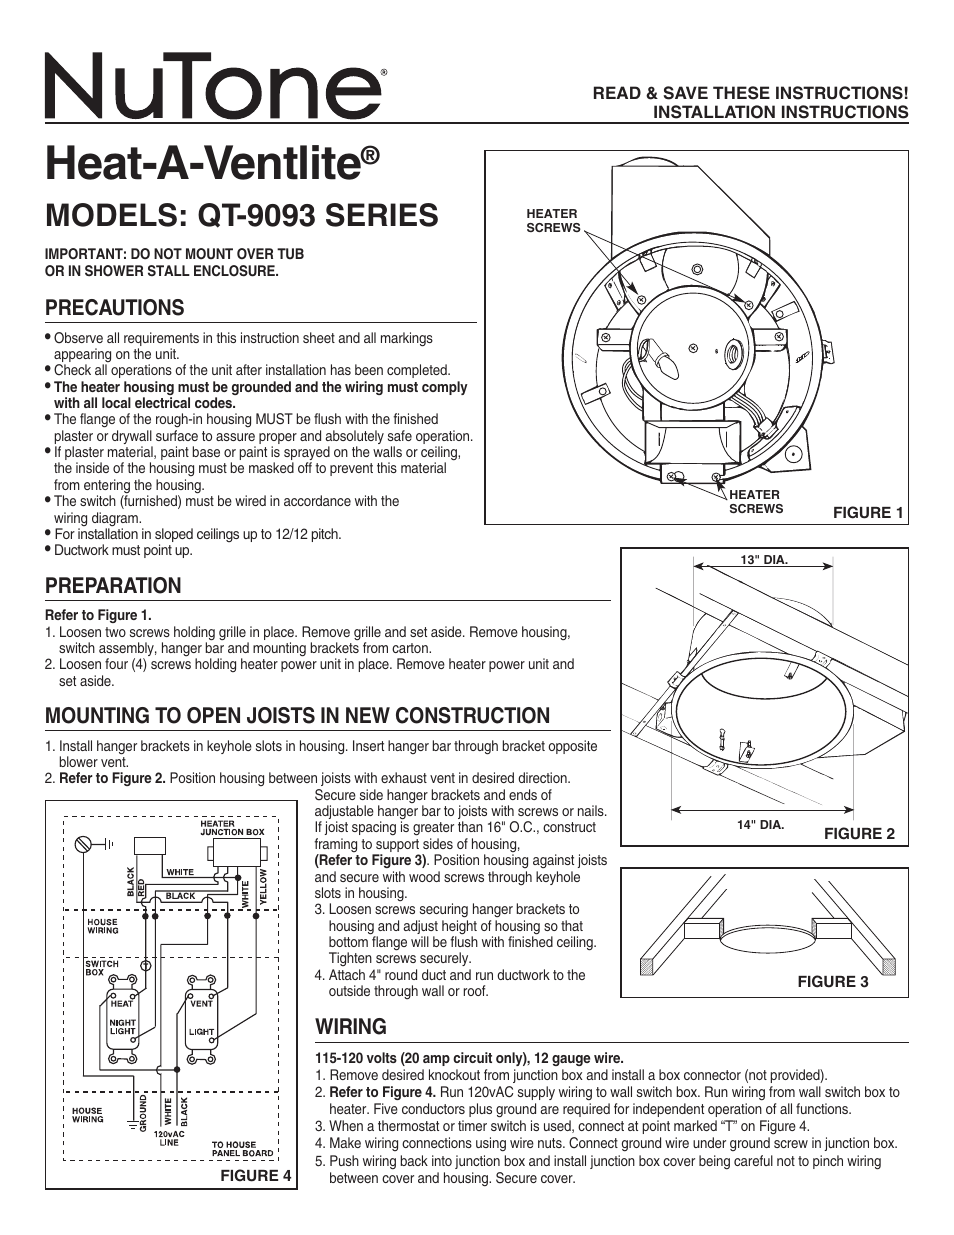 Nutone Heat A Ventlite Qt 9093 User Manual 2 Pages